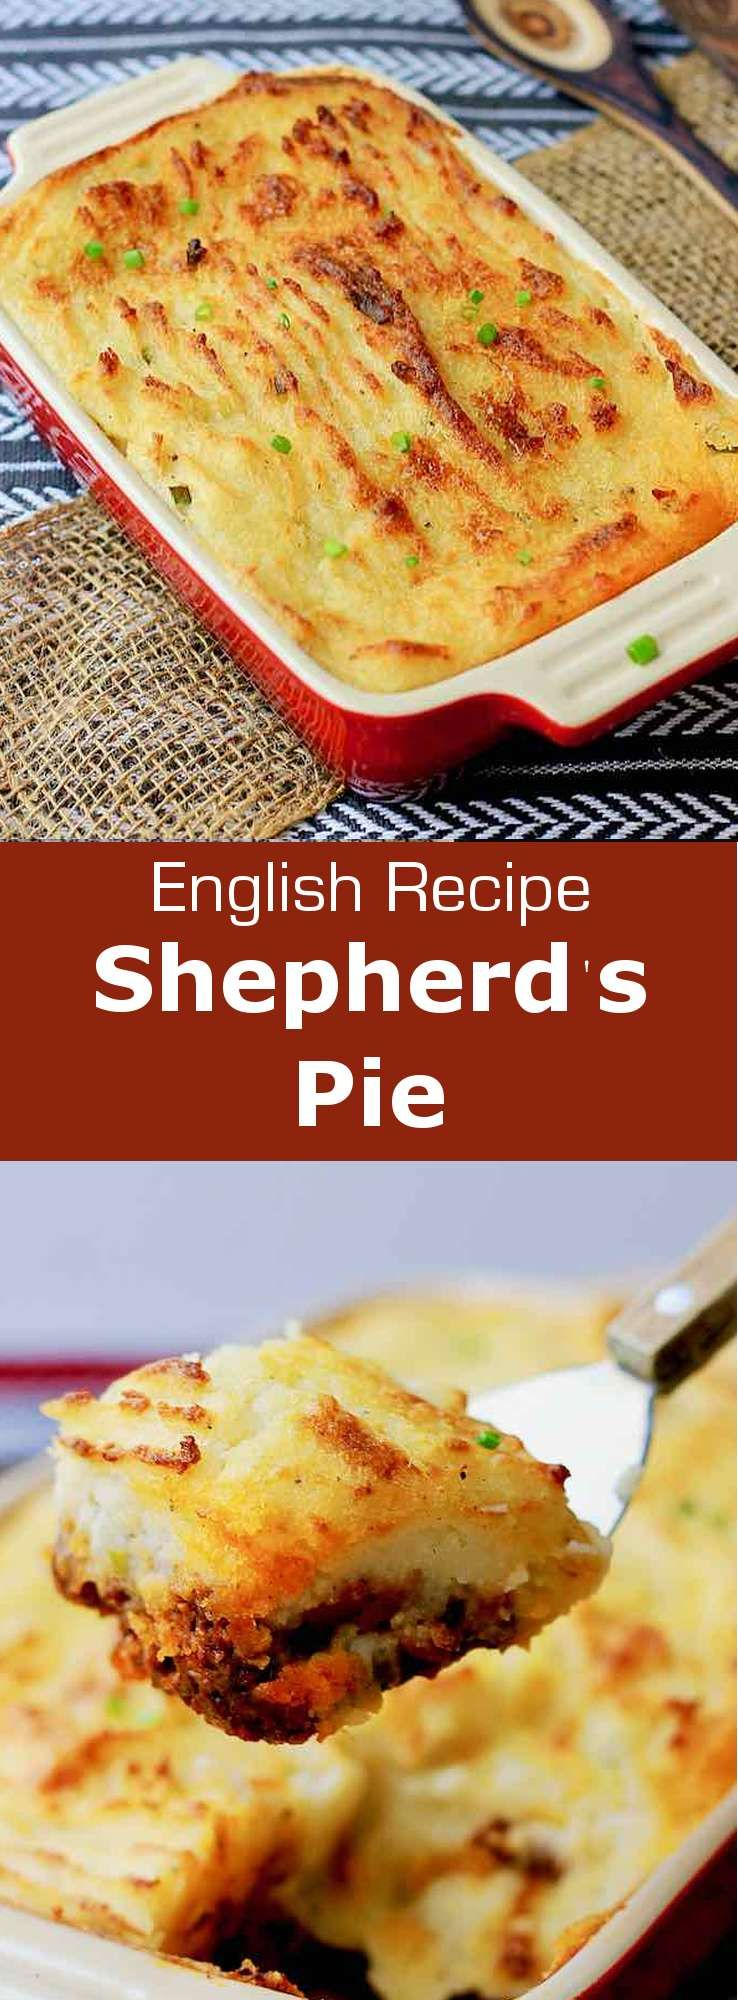 Shepherd S Pie Is A Traditional British Dish Made From Lamb Or Mutton And Mashed Potatoes That Is Similar To French Hac British Dishes British Cooking Recipes